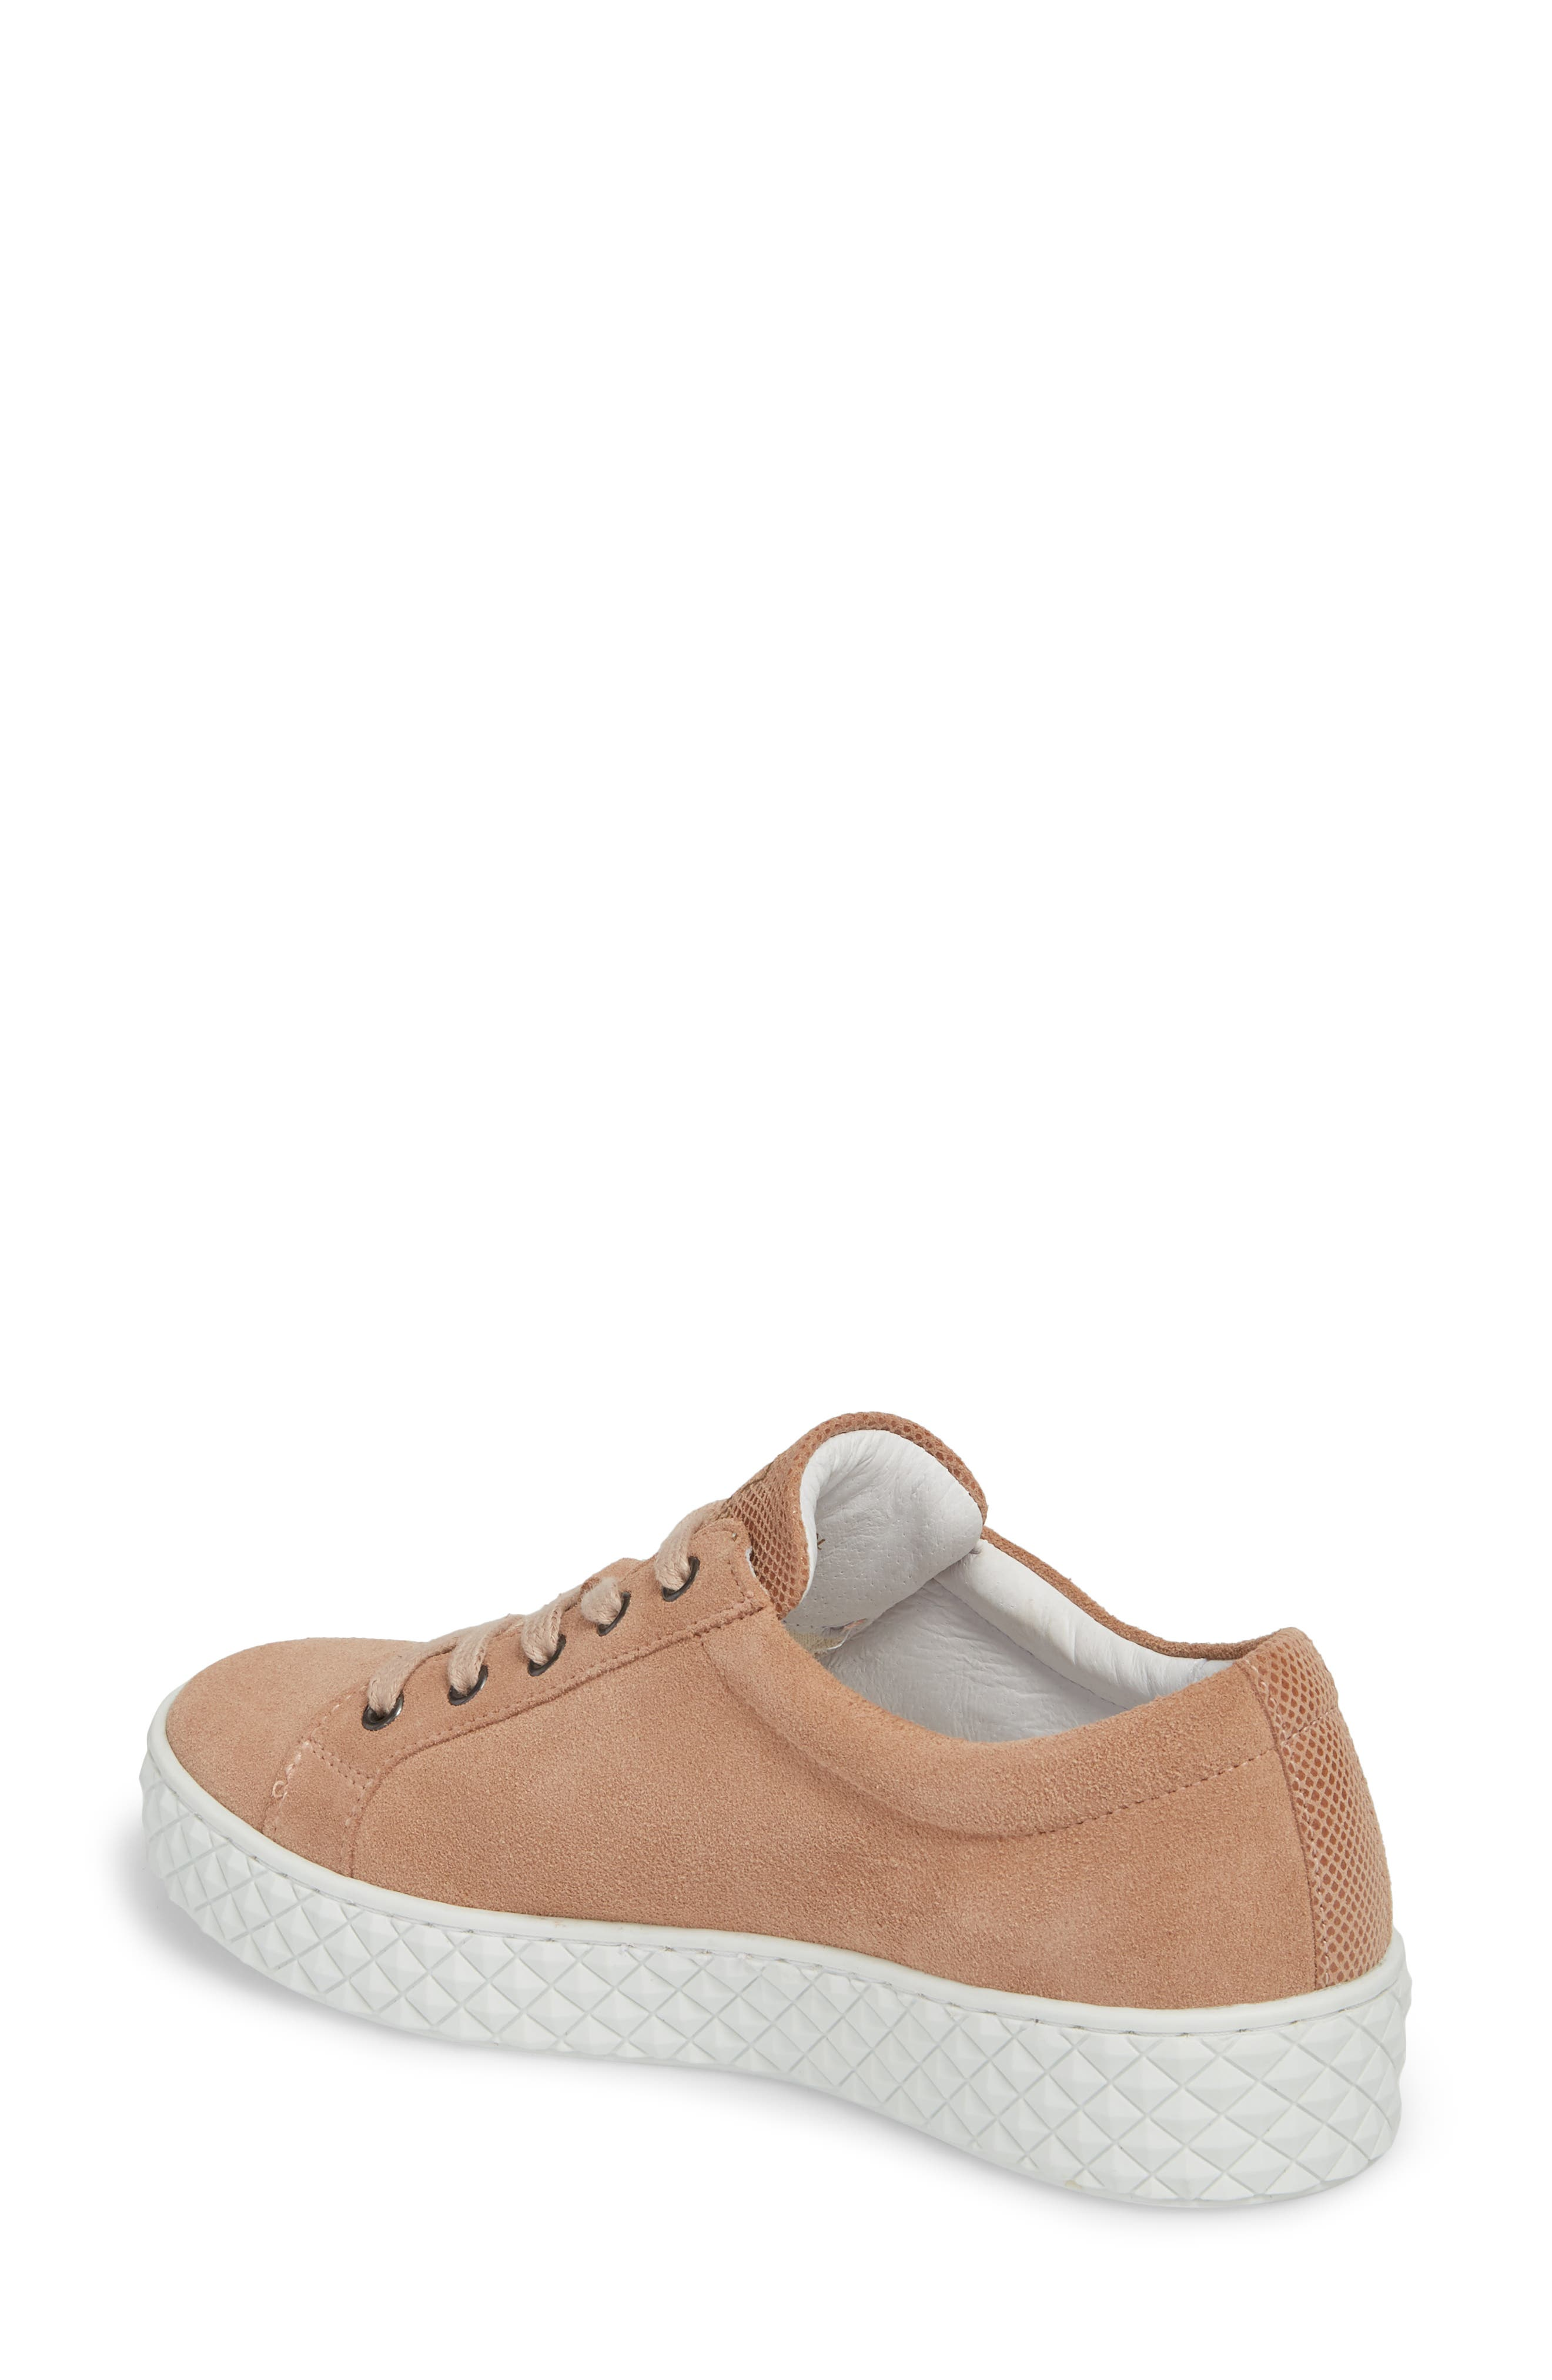 Acton II Sneaker,                             Alternate thumbnail 2, color,                             Dark Cipria Suede